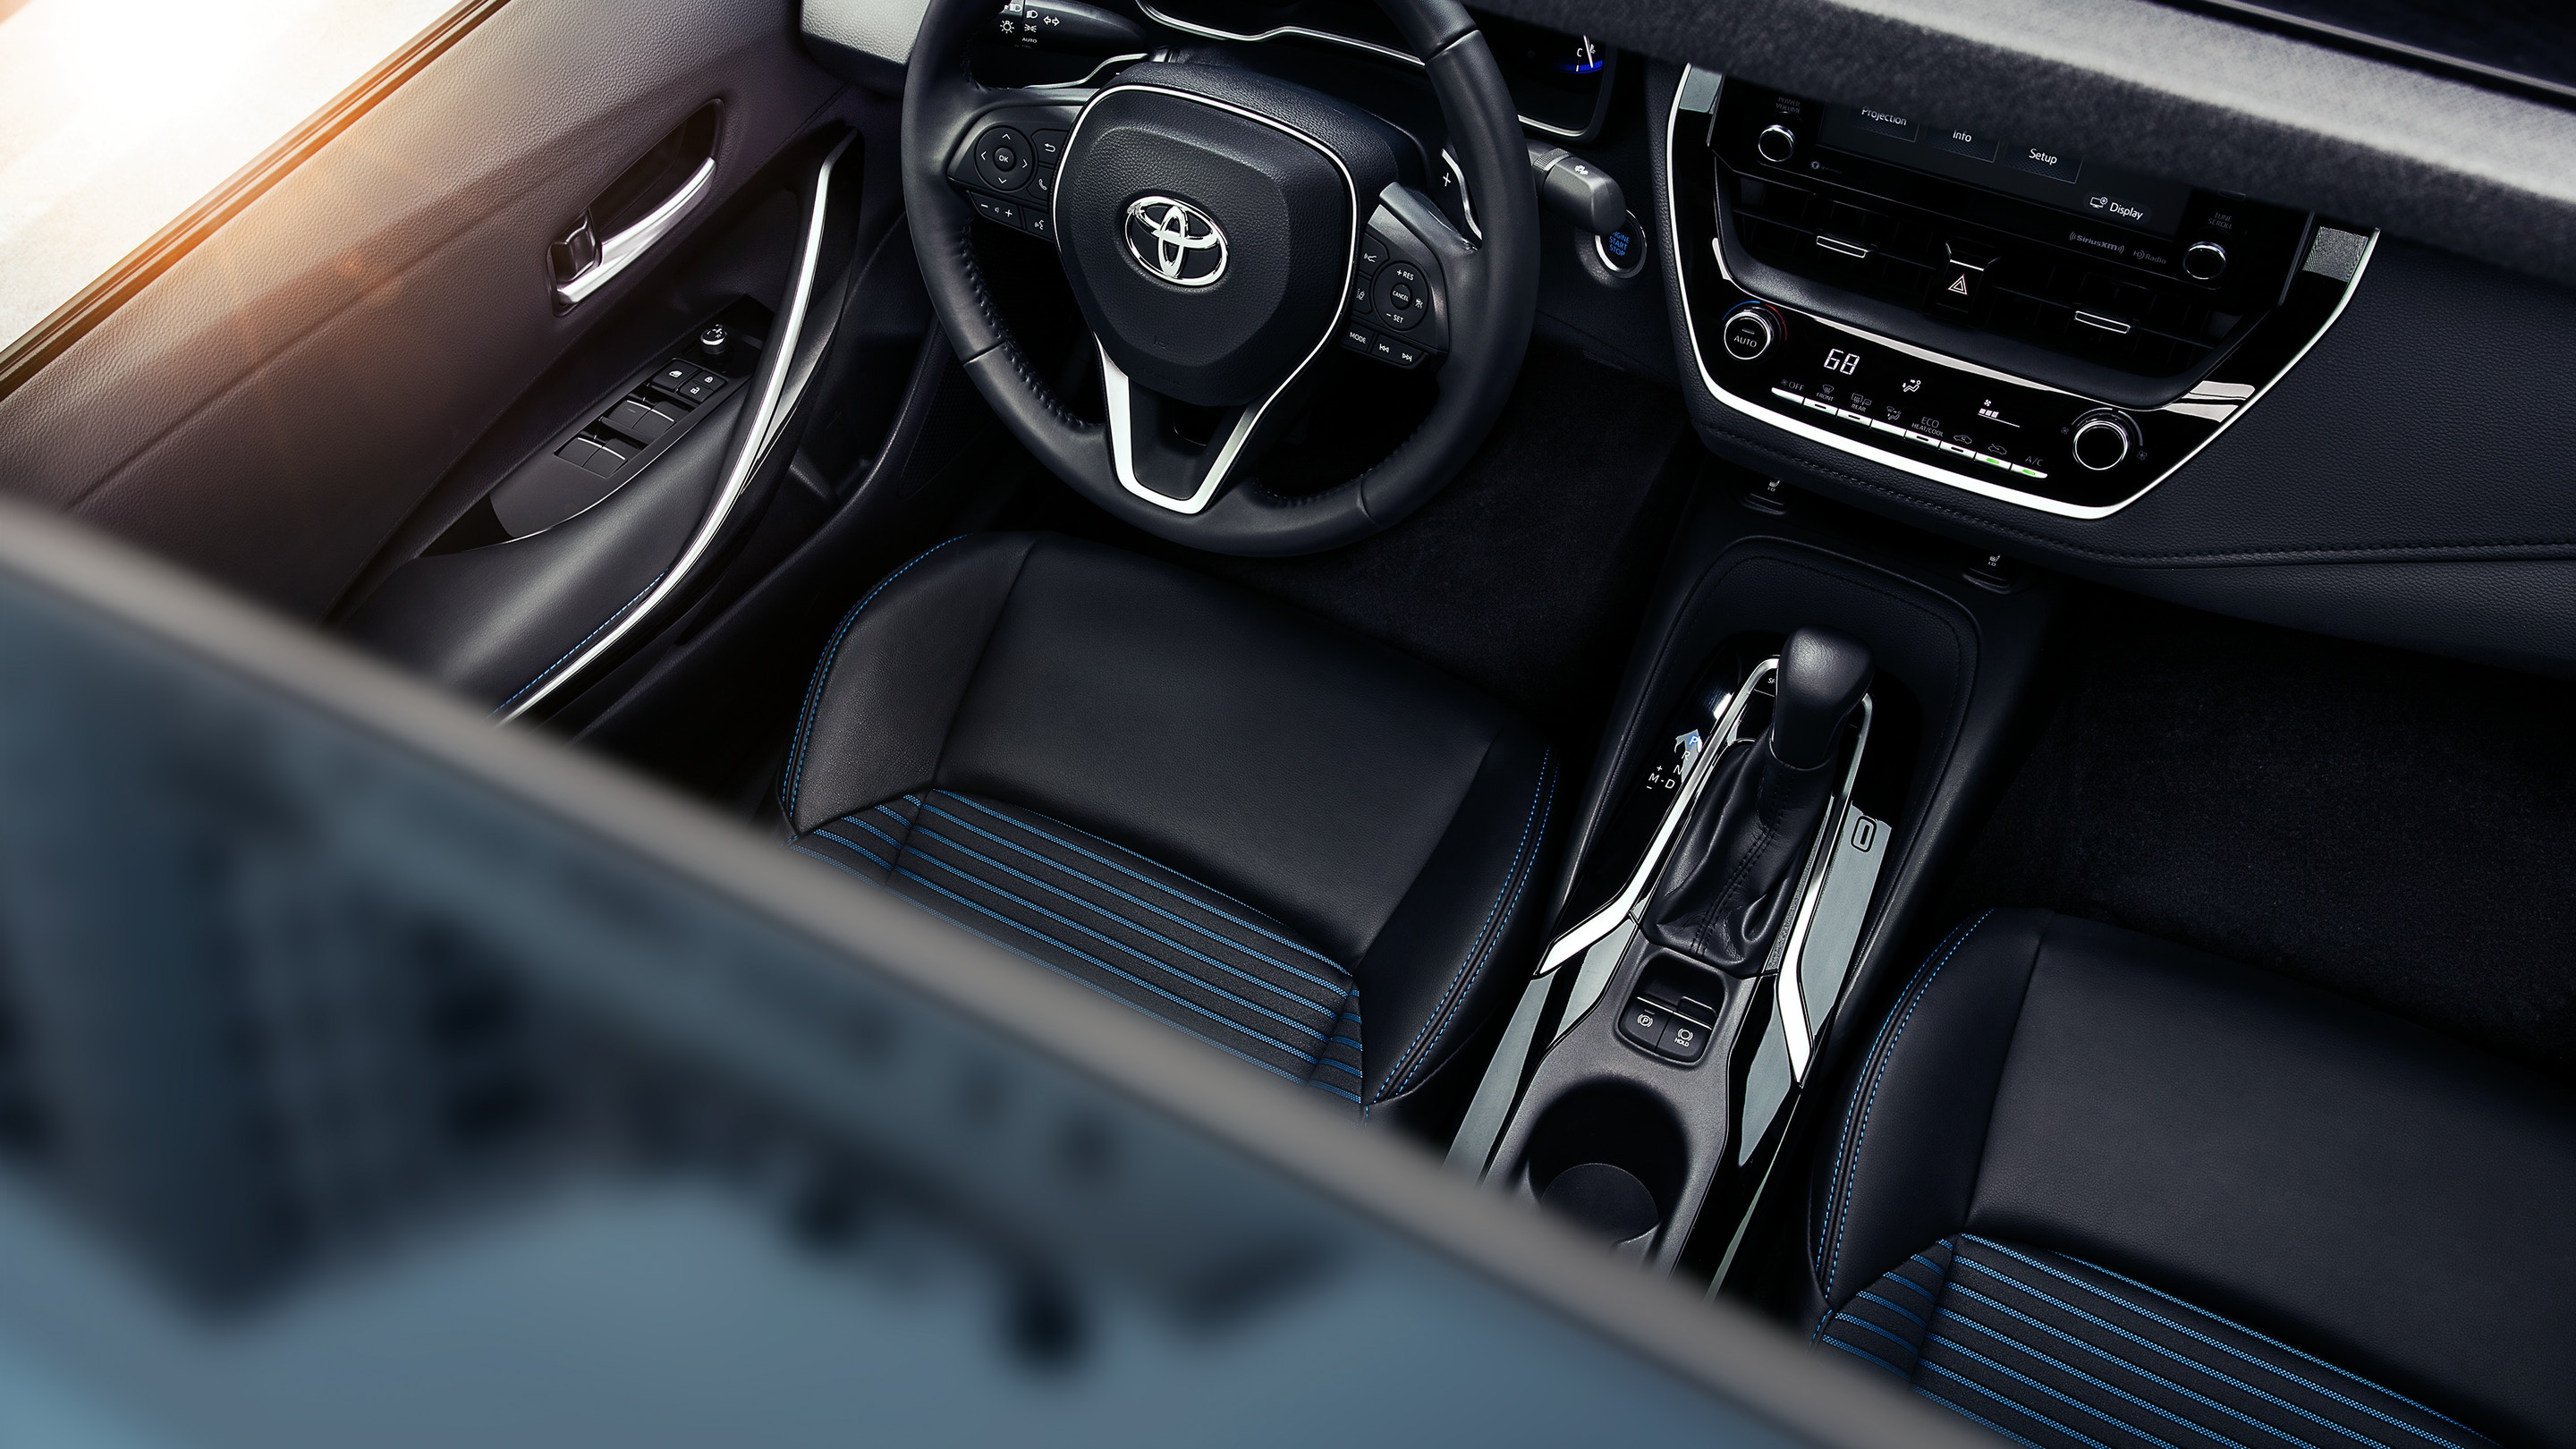 Interior of the 2020 Toyota Corolla Hybrid